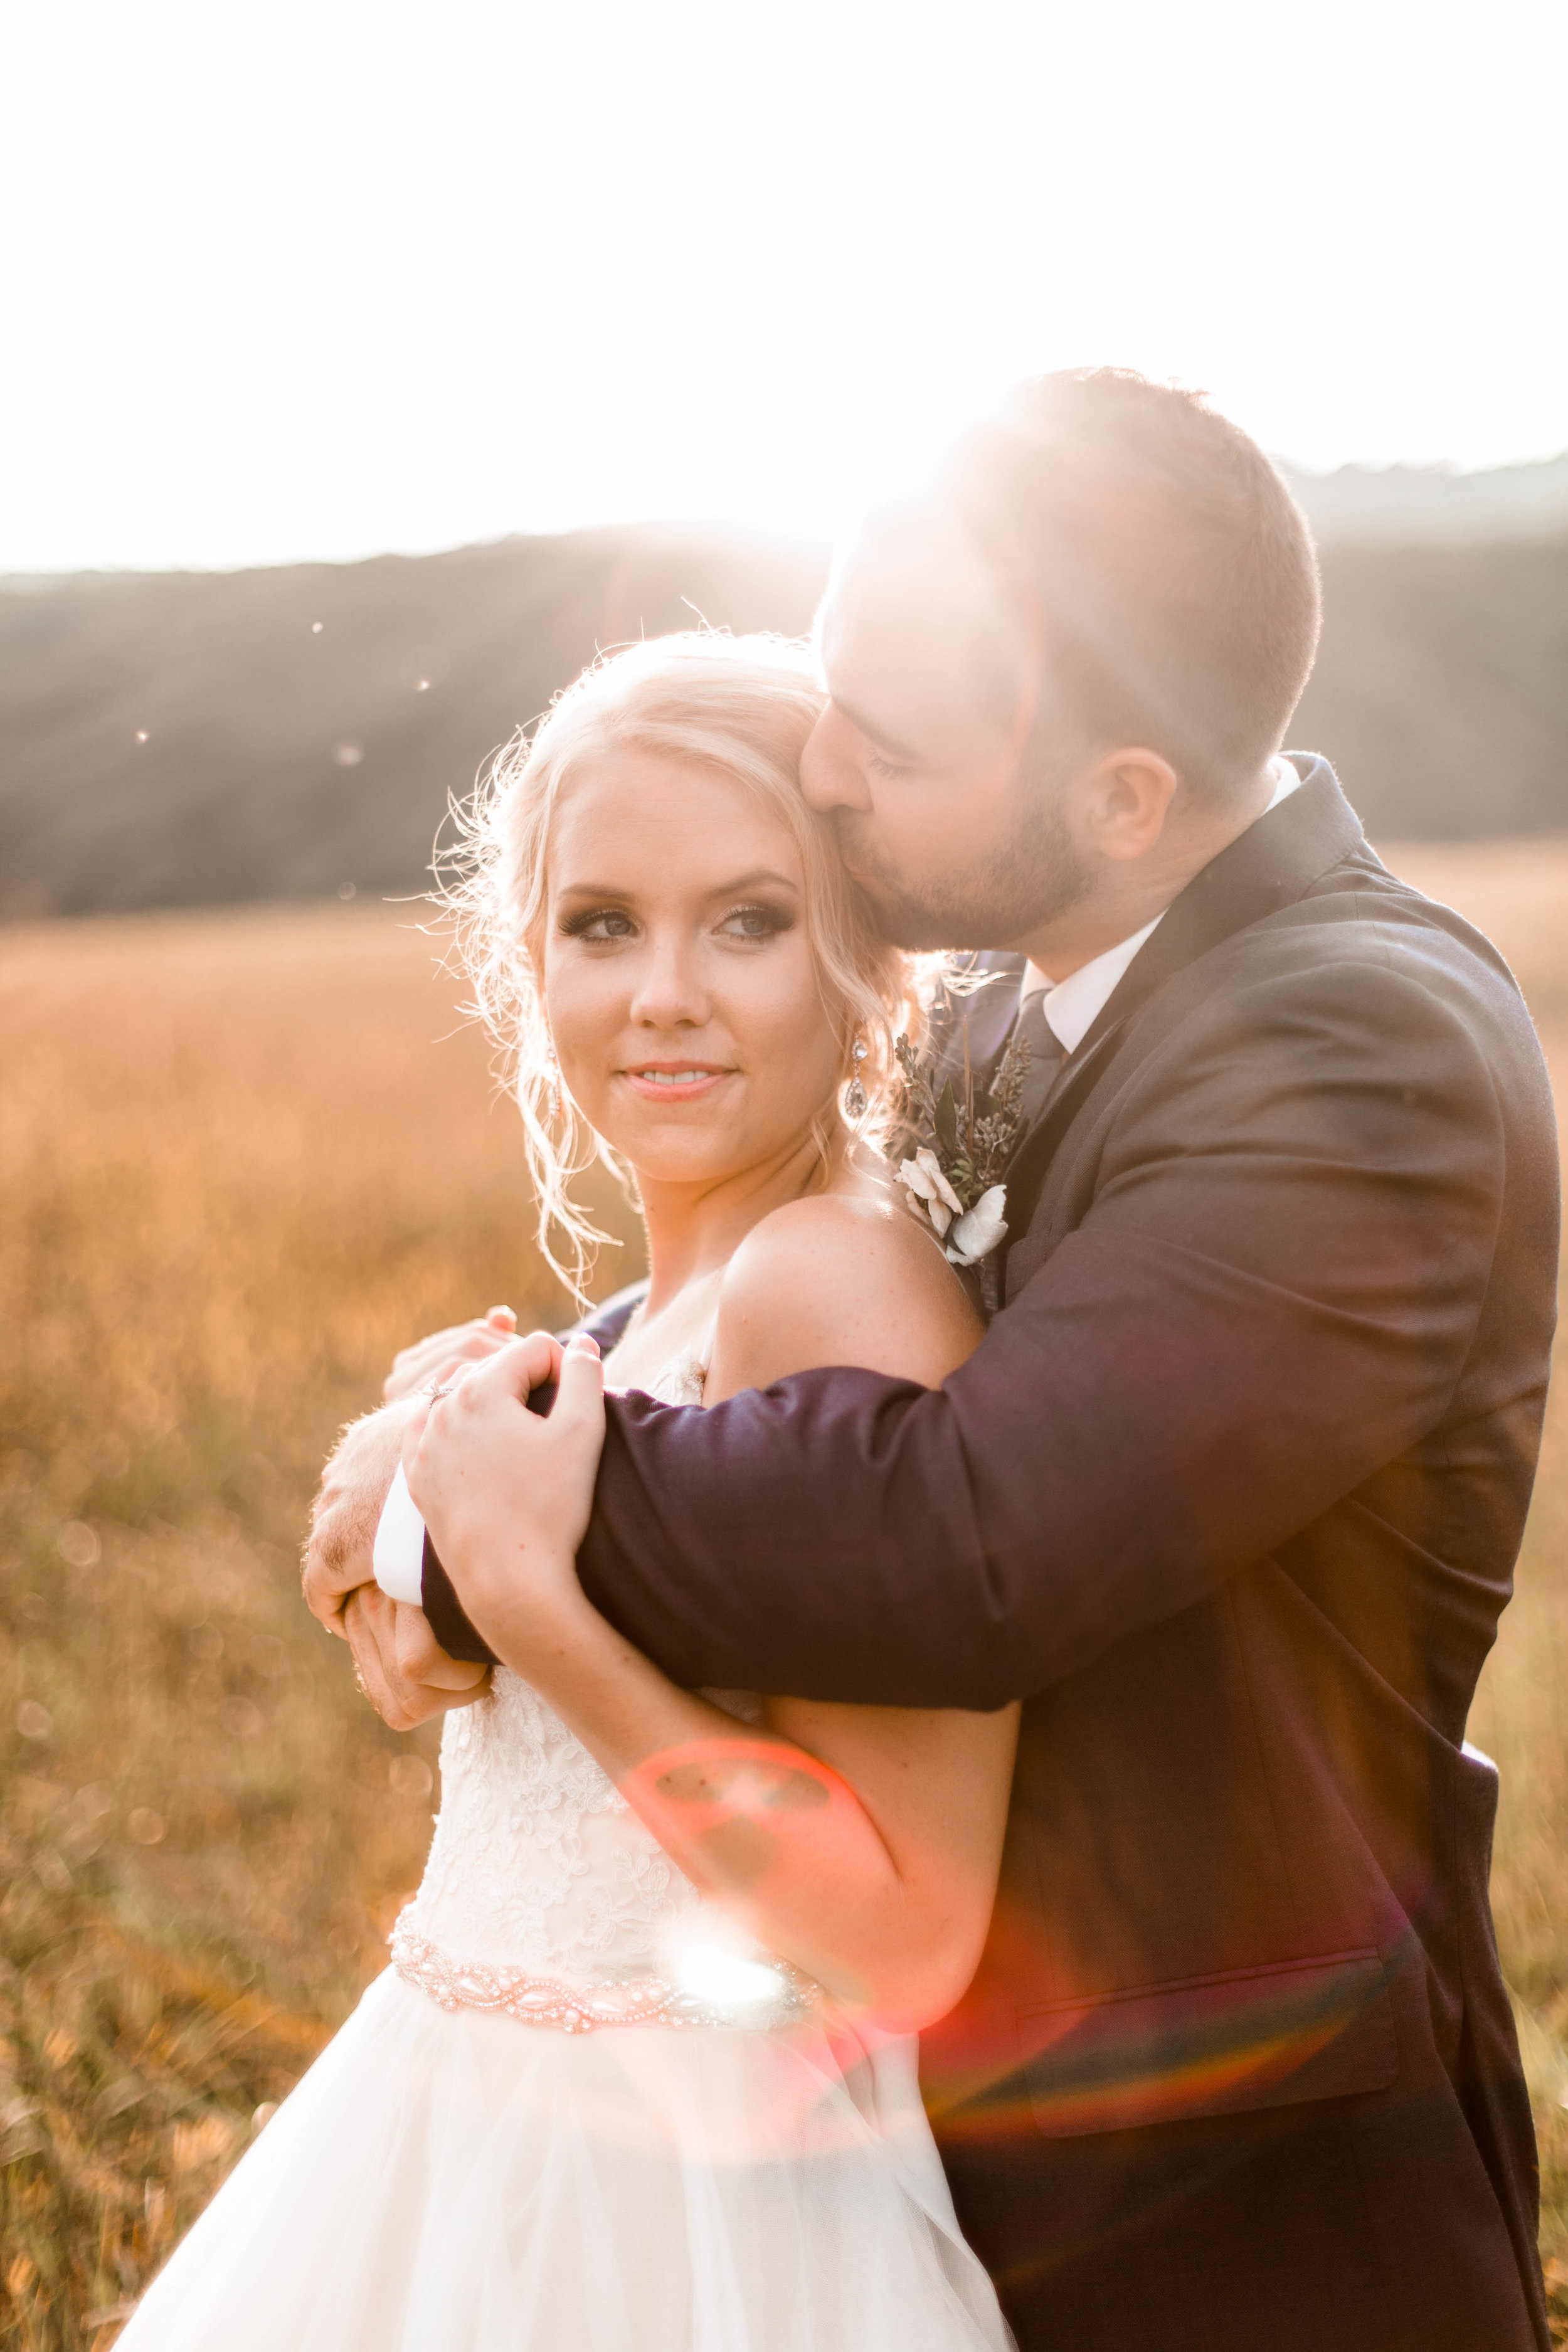 nicole-daacke-photography-intimate-wedding-in-a-lavender-field-washington-state-wedding-photographer-intimate-elopement-golden-lavender-field-wedding-photos-56.jpg